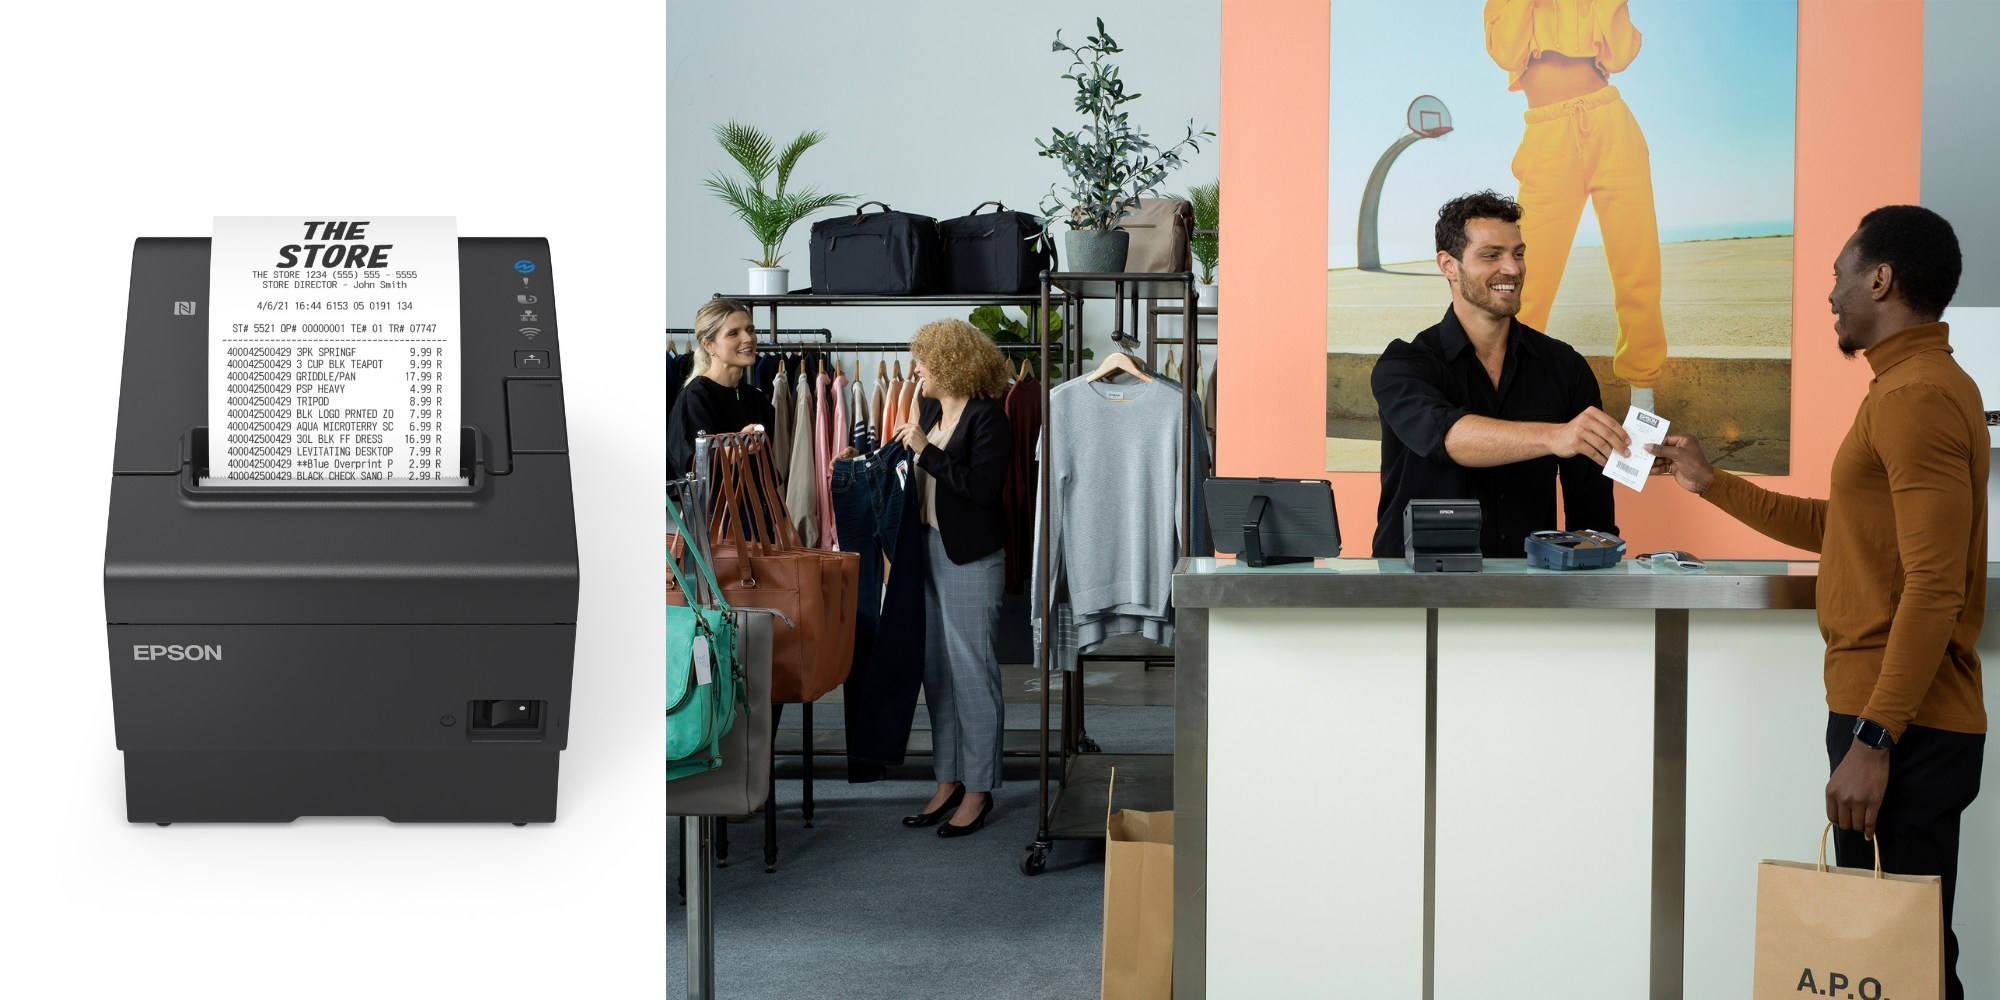 Epson Unveils the Fastest POS Receipt Printer in the Industry1-New OmniLink TM-T88VII